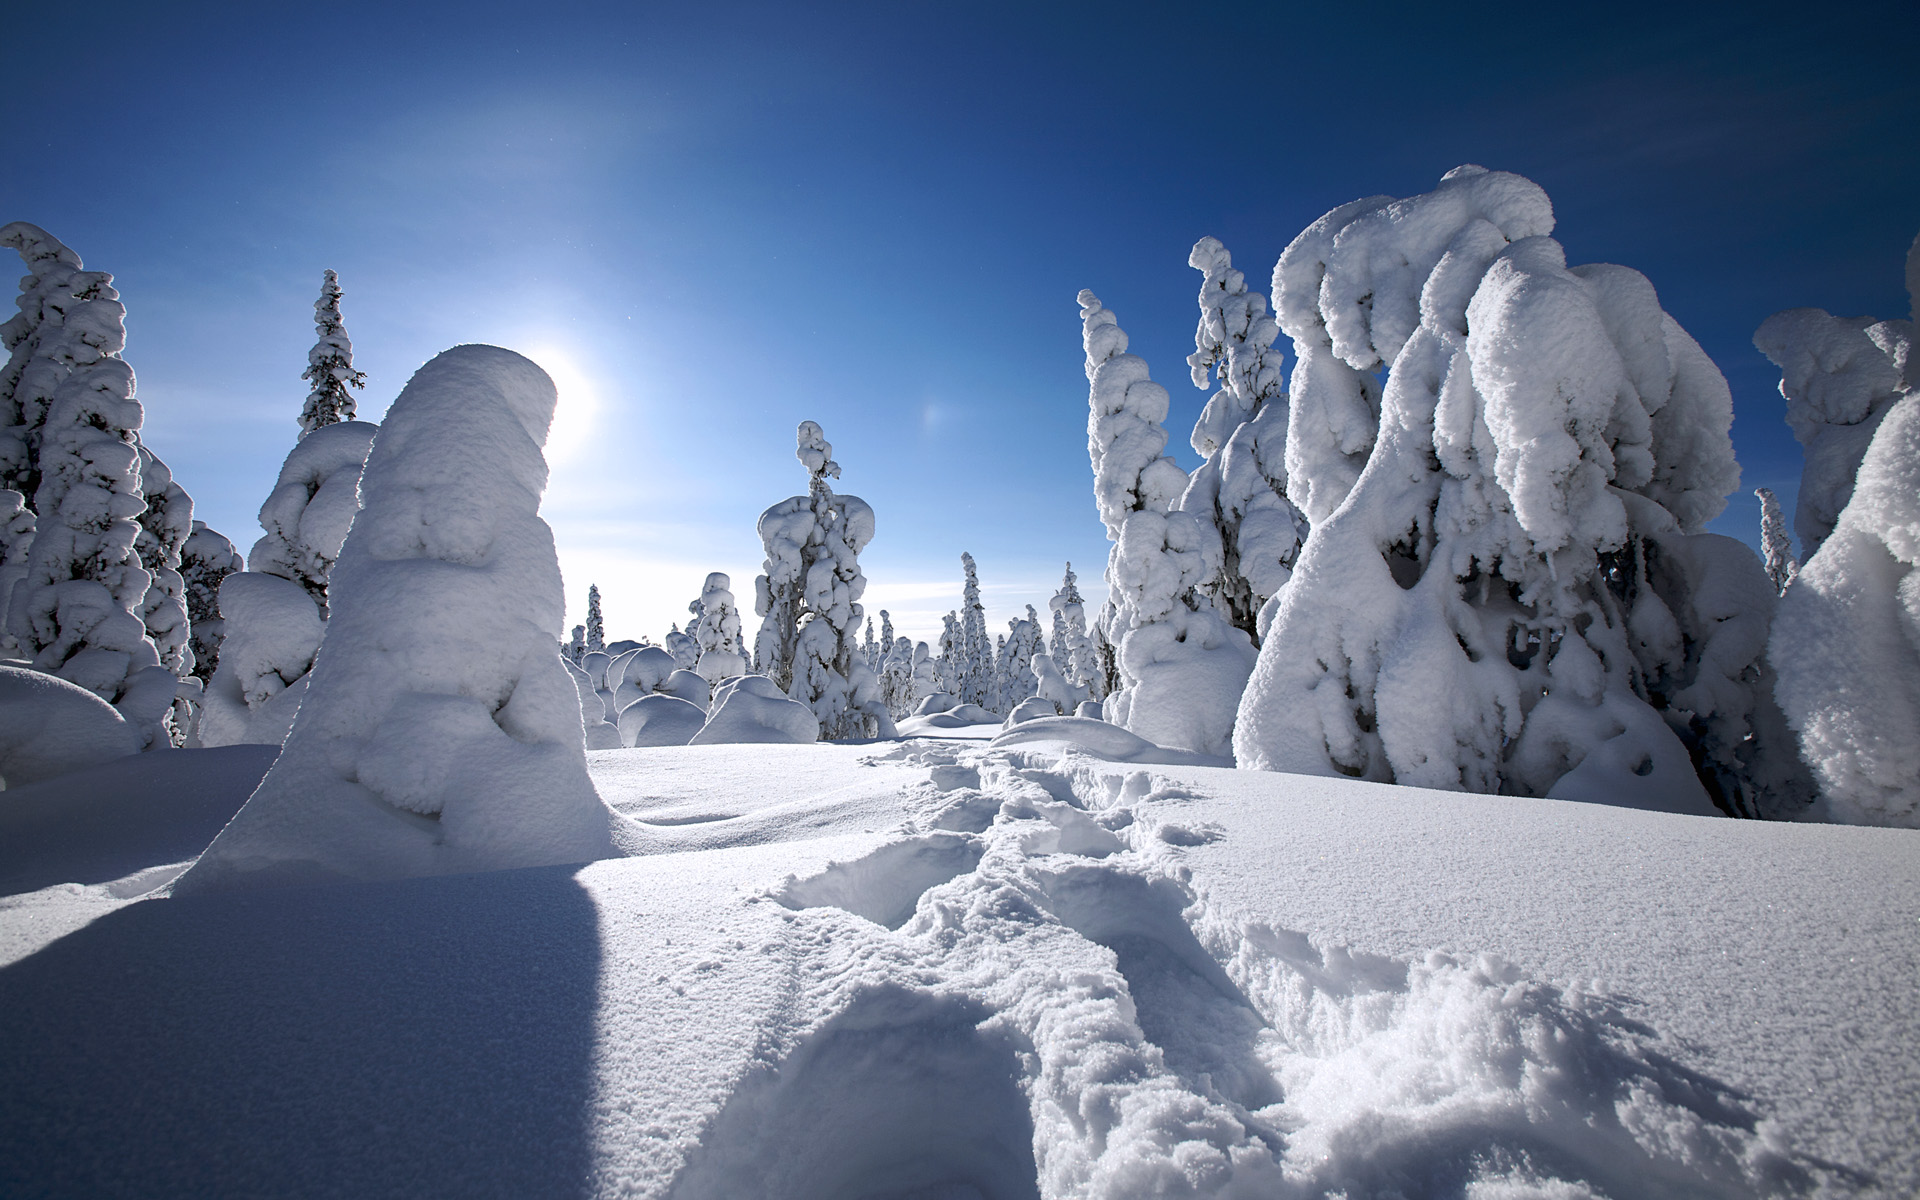 Winter in Finland 519.99 Kb